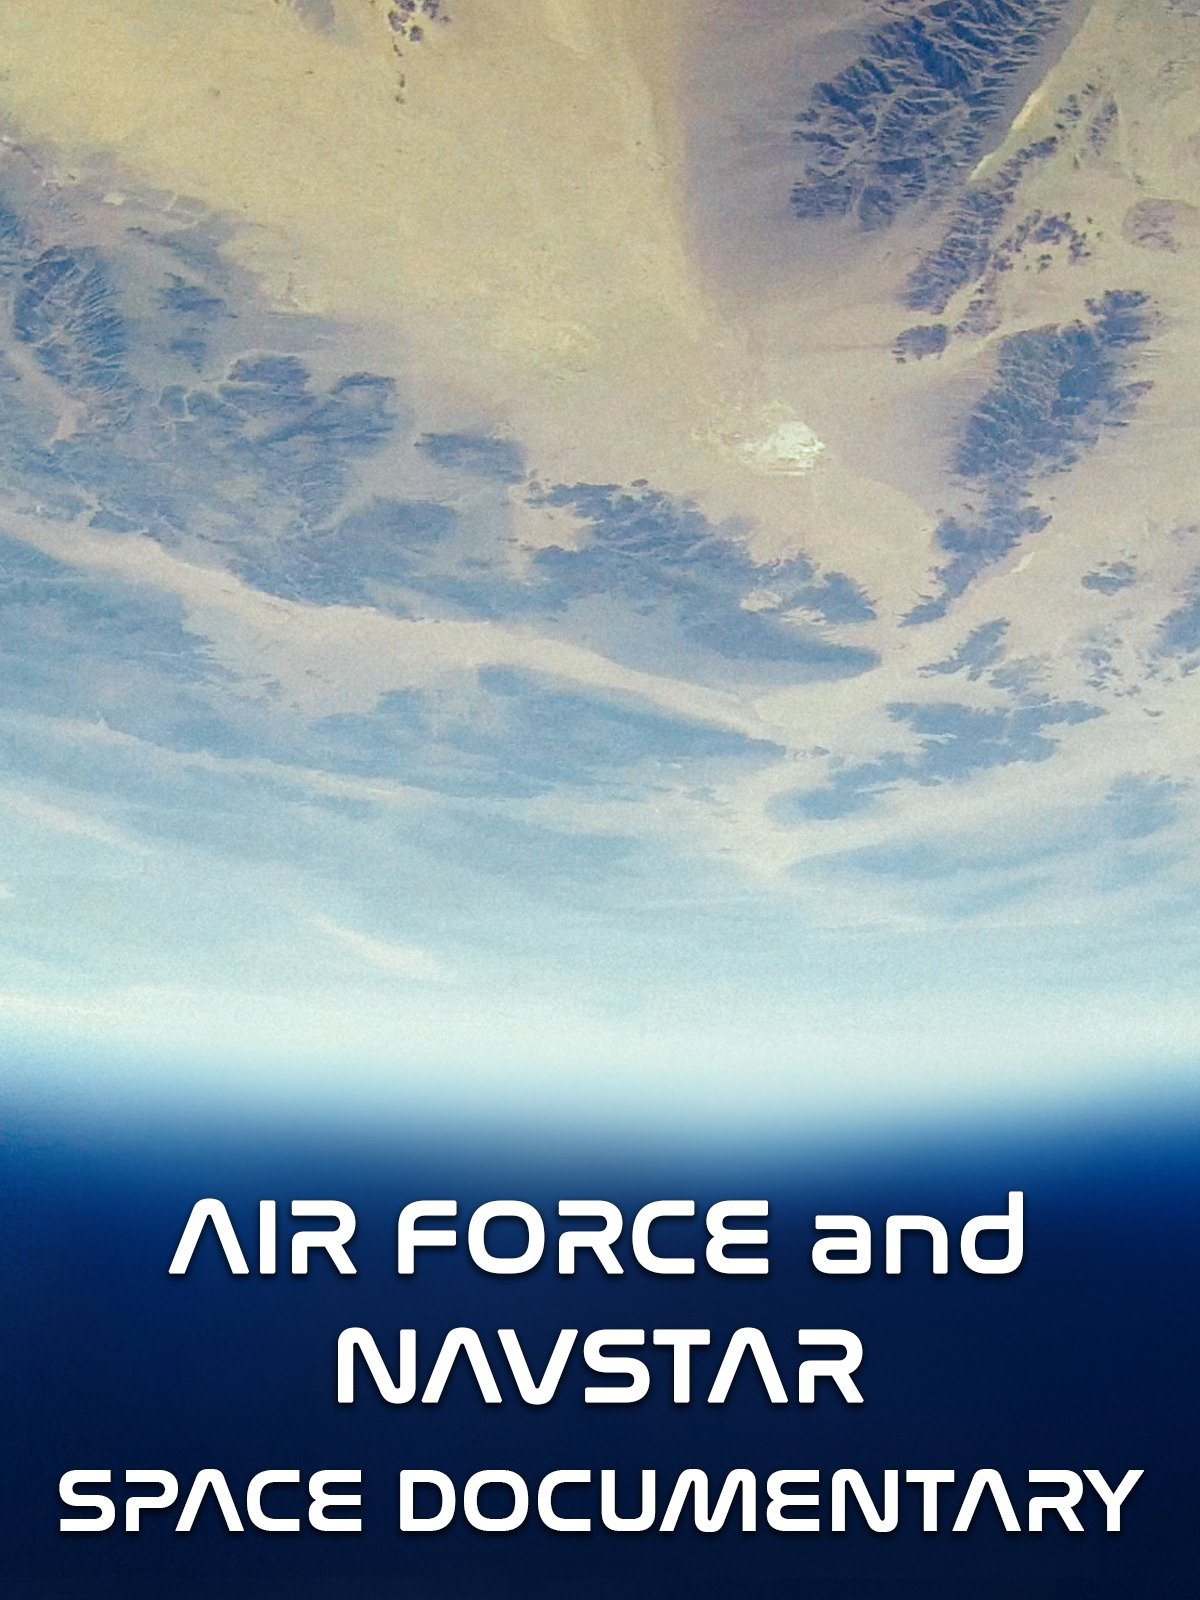 Airforce and Navstar Space Documentary